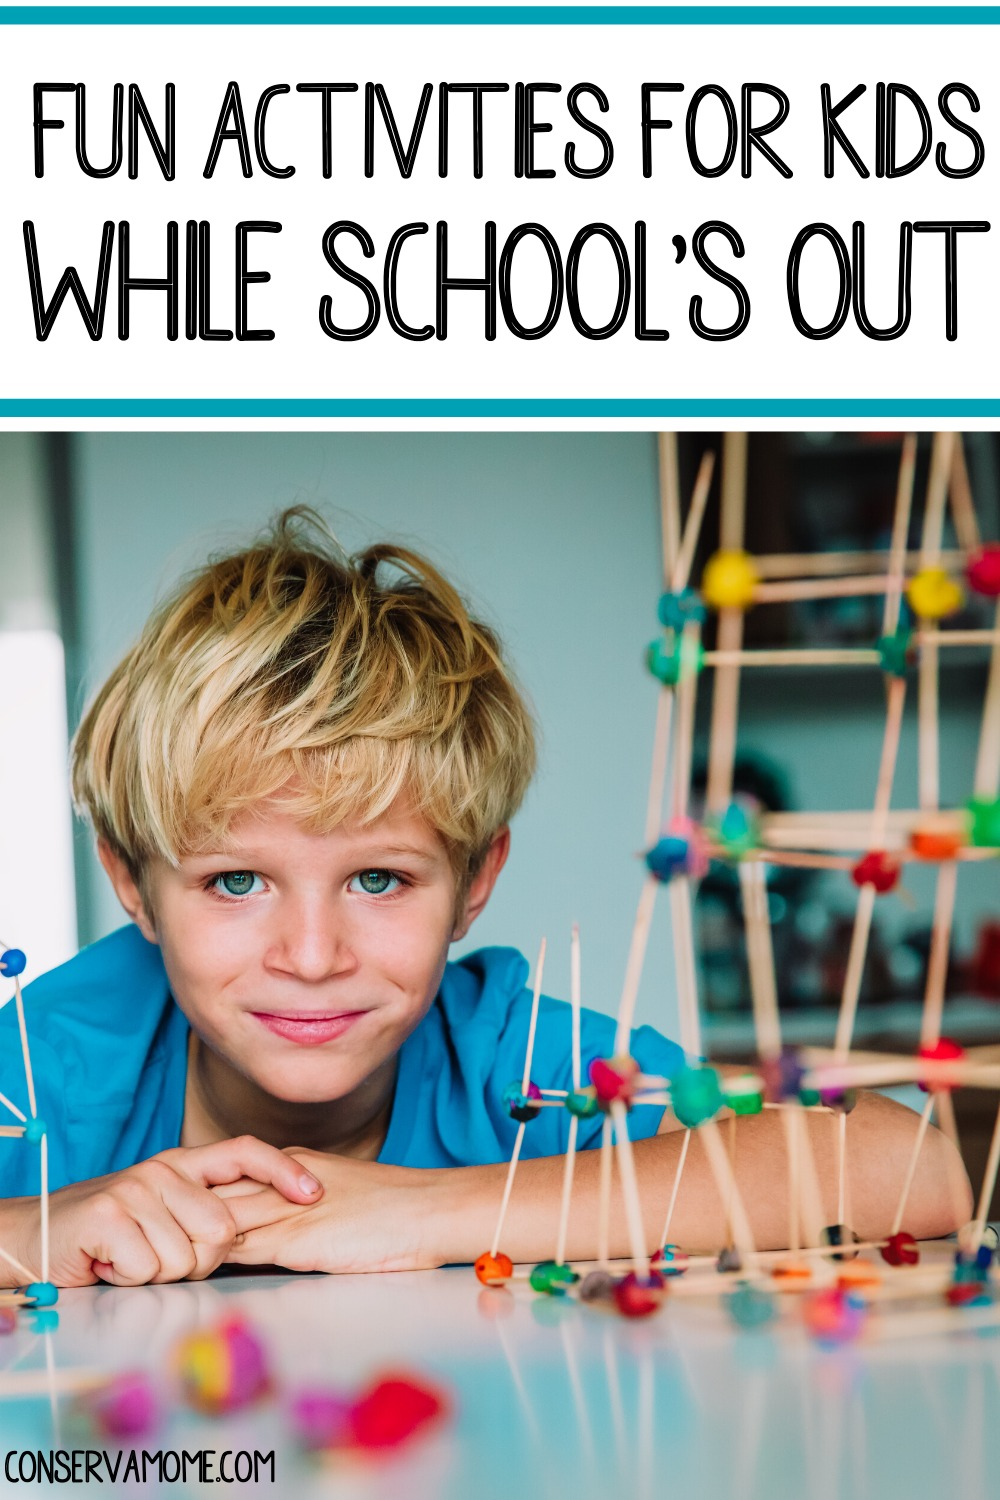 Fun activities for kids while schools out